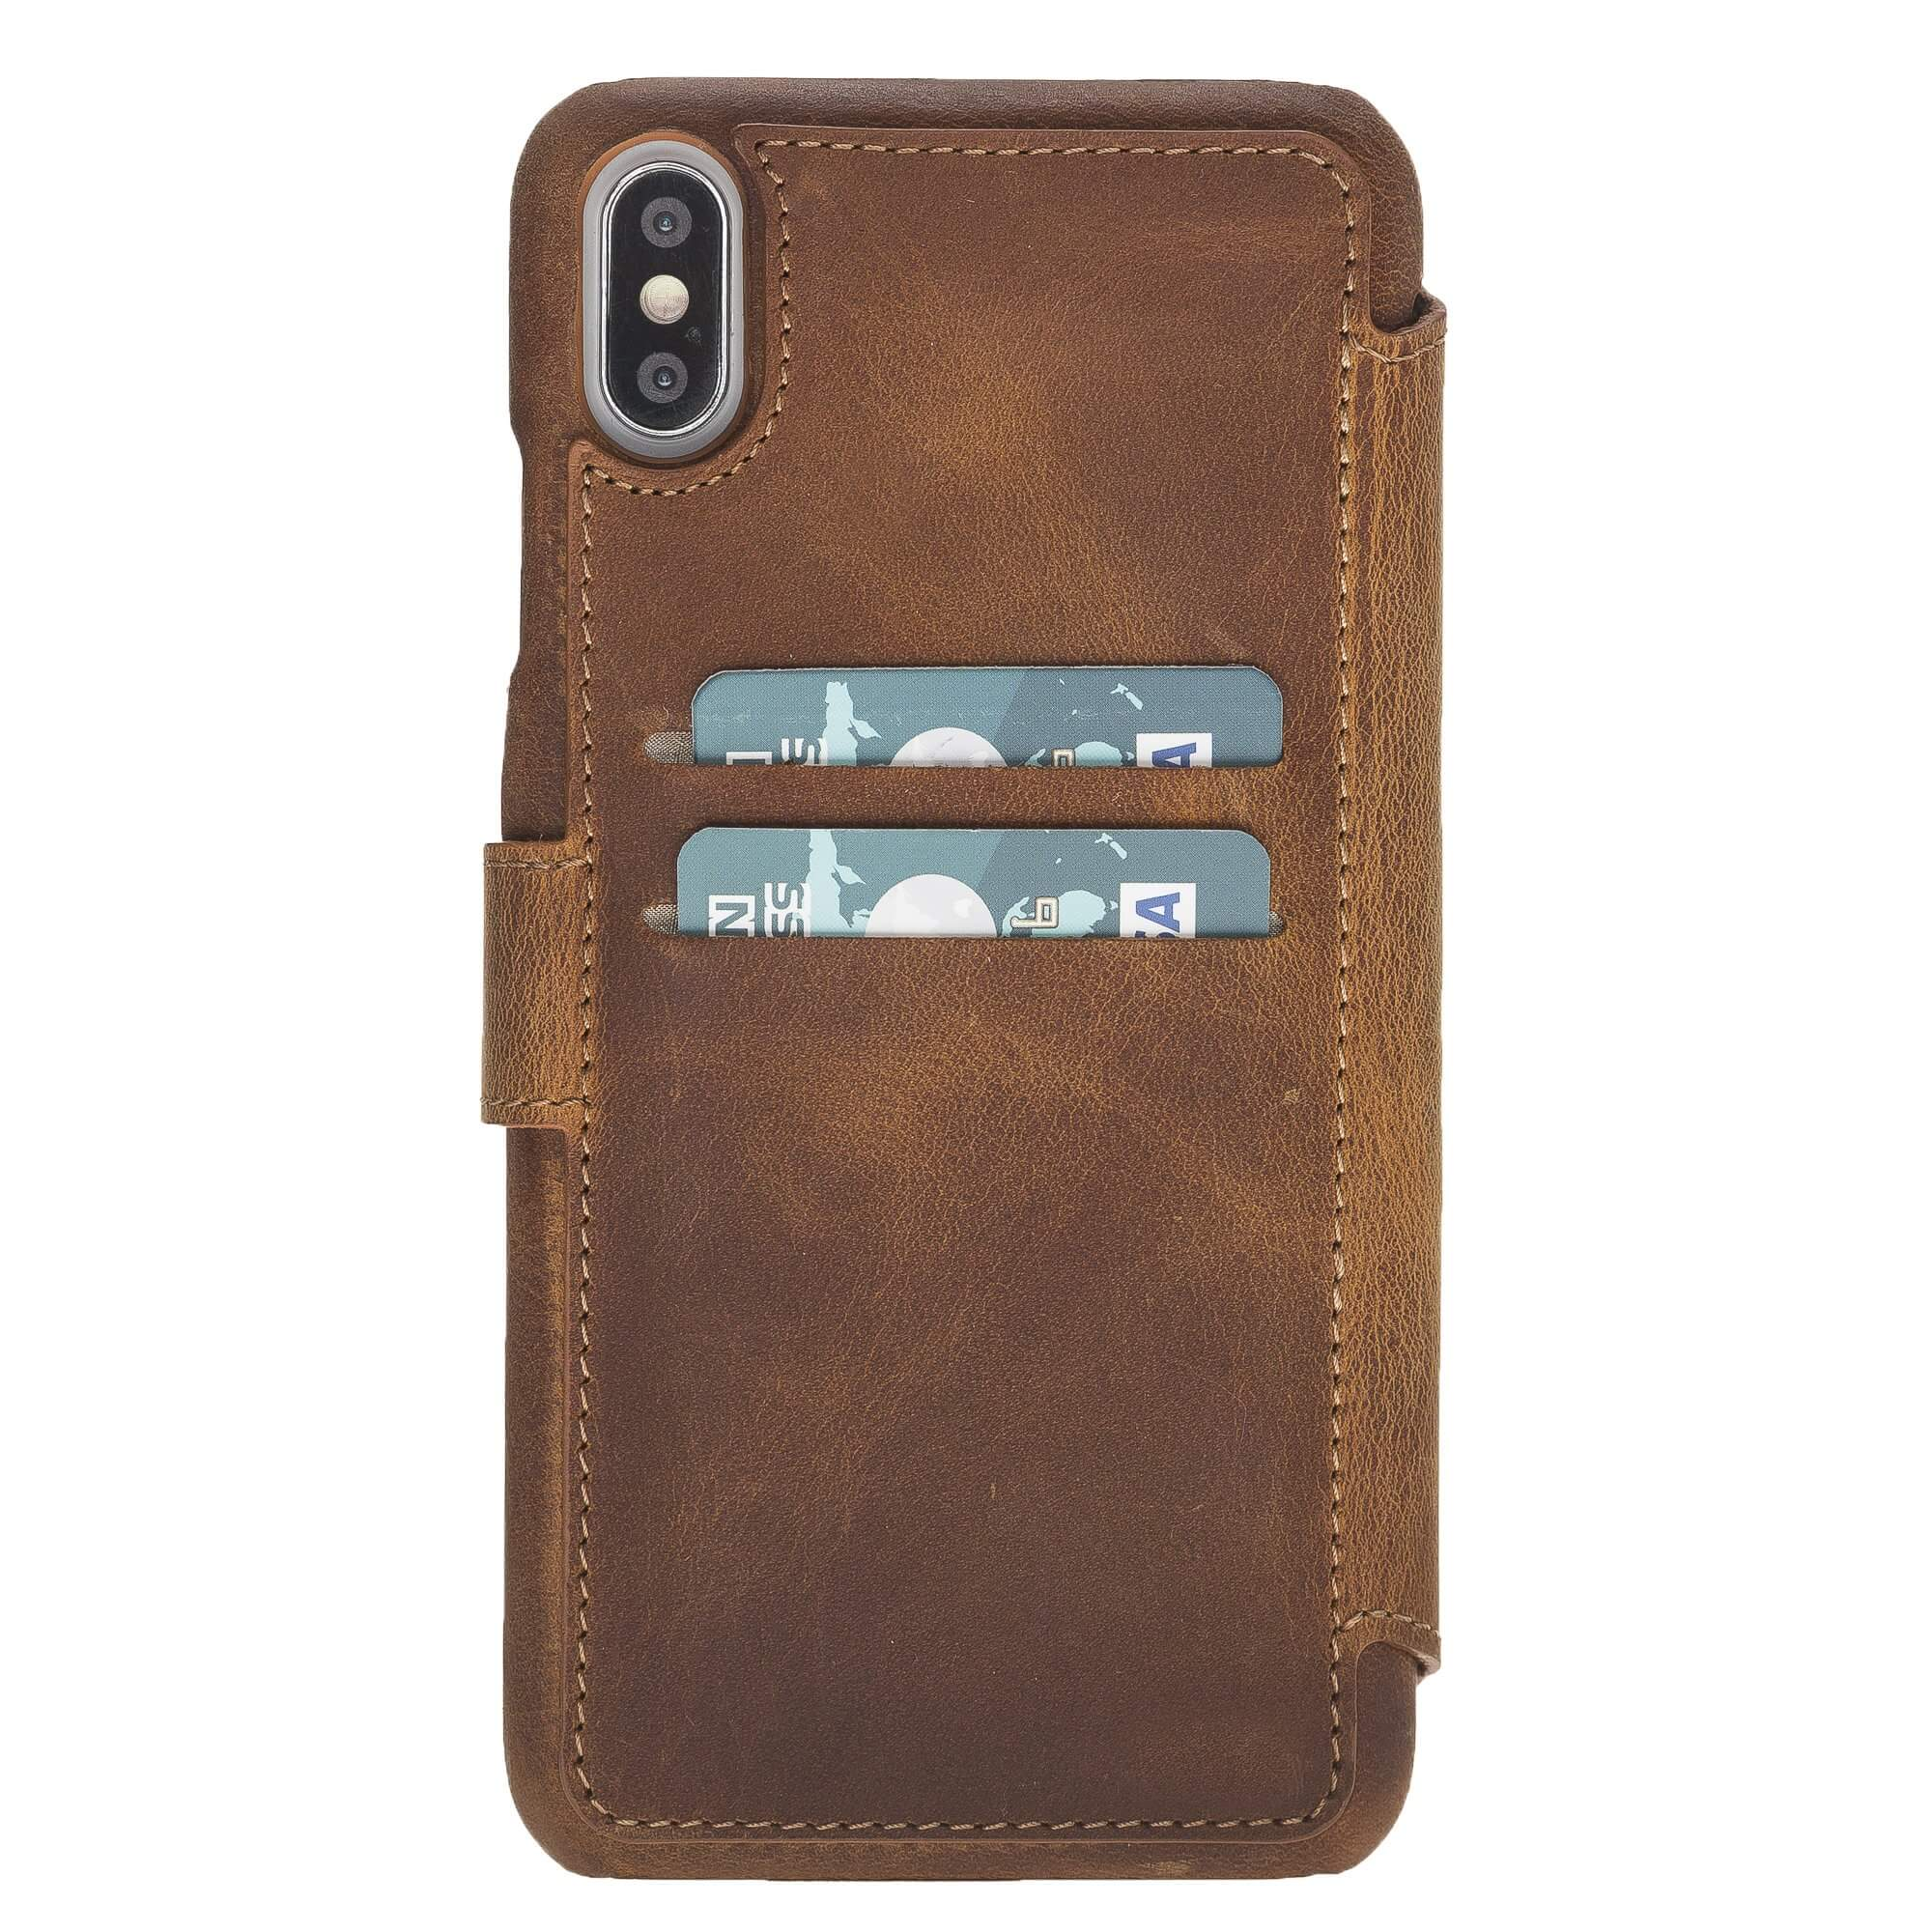 Siena RFID Blocking Leather Wallet Case for iPhone XS Max